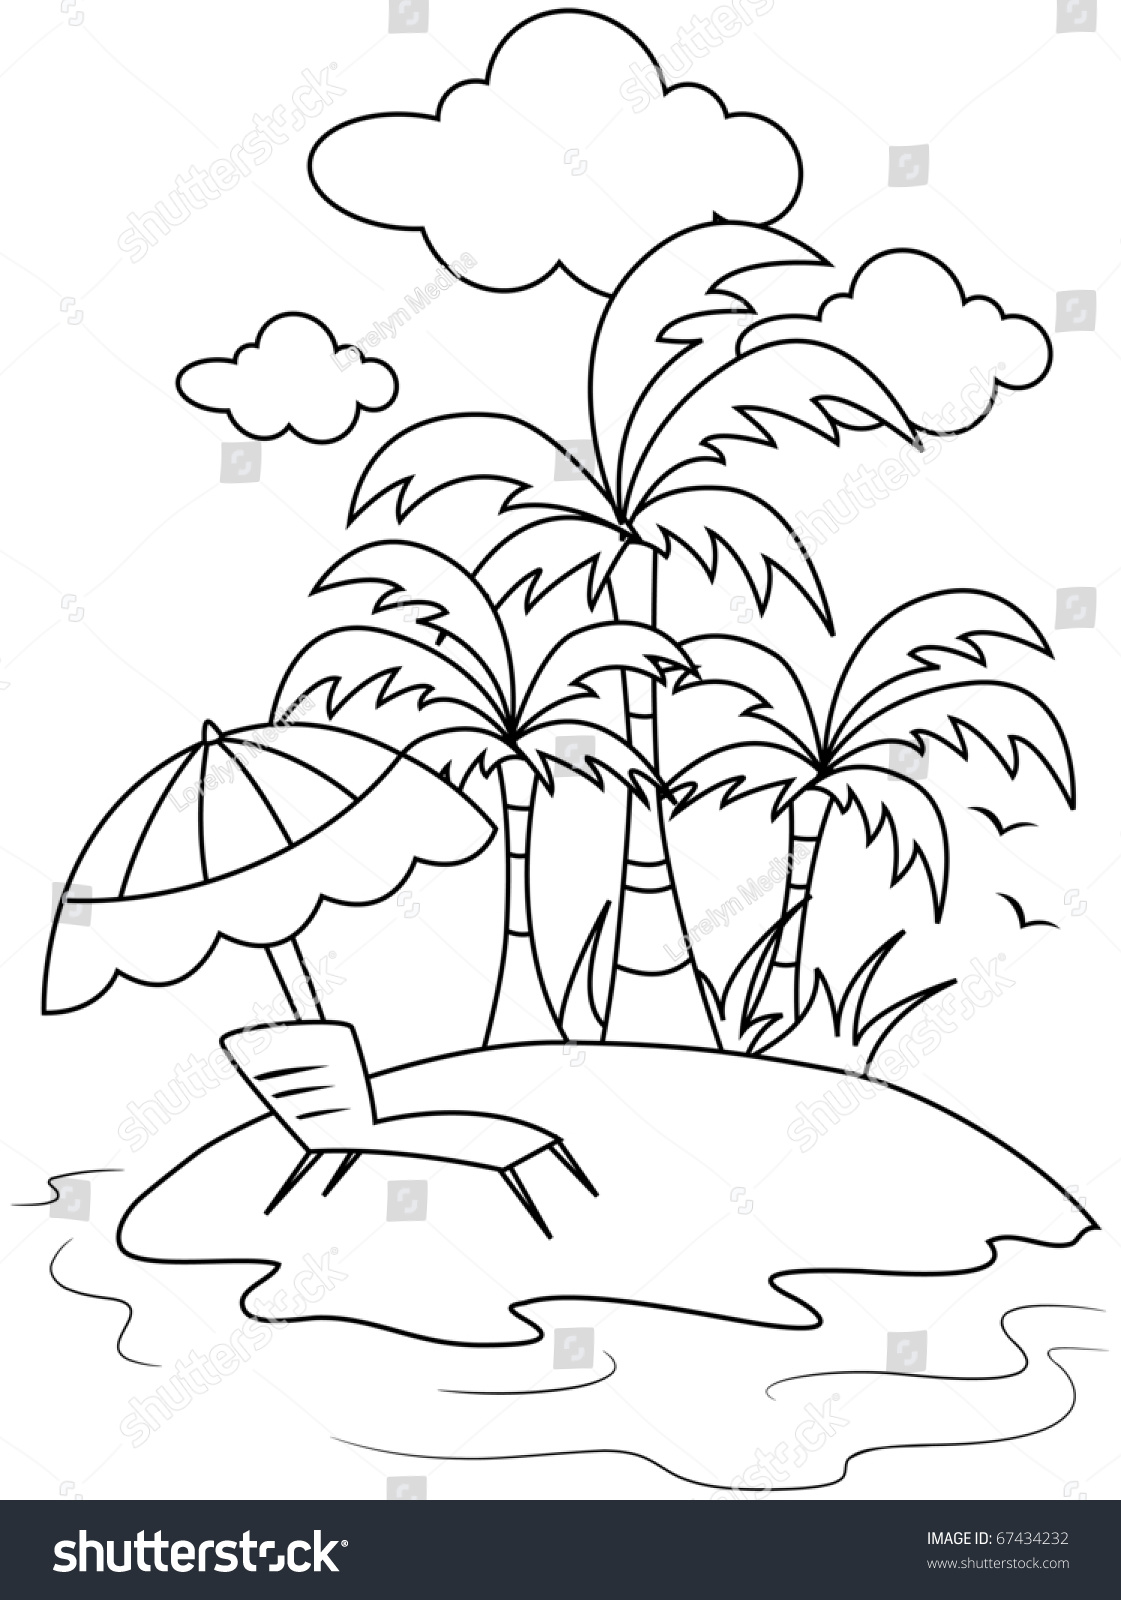 Line Art Illustration Of A Small Isle With Beach Umbrella And Reclining Chair In Front